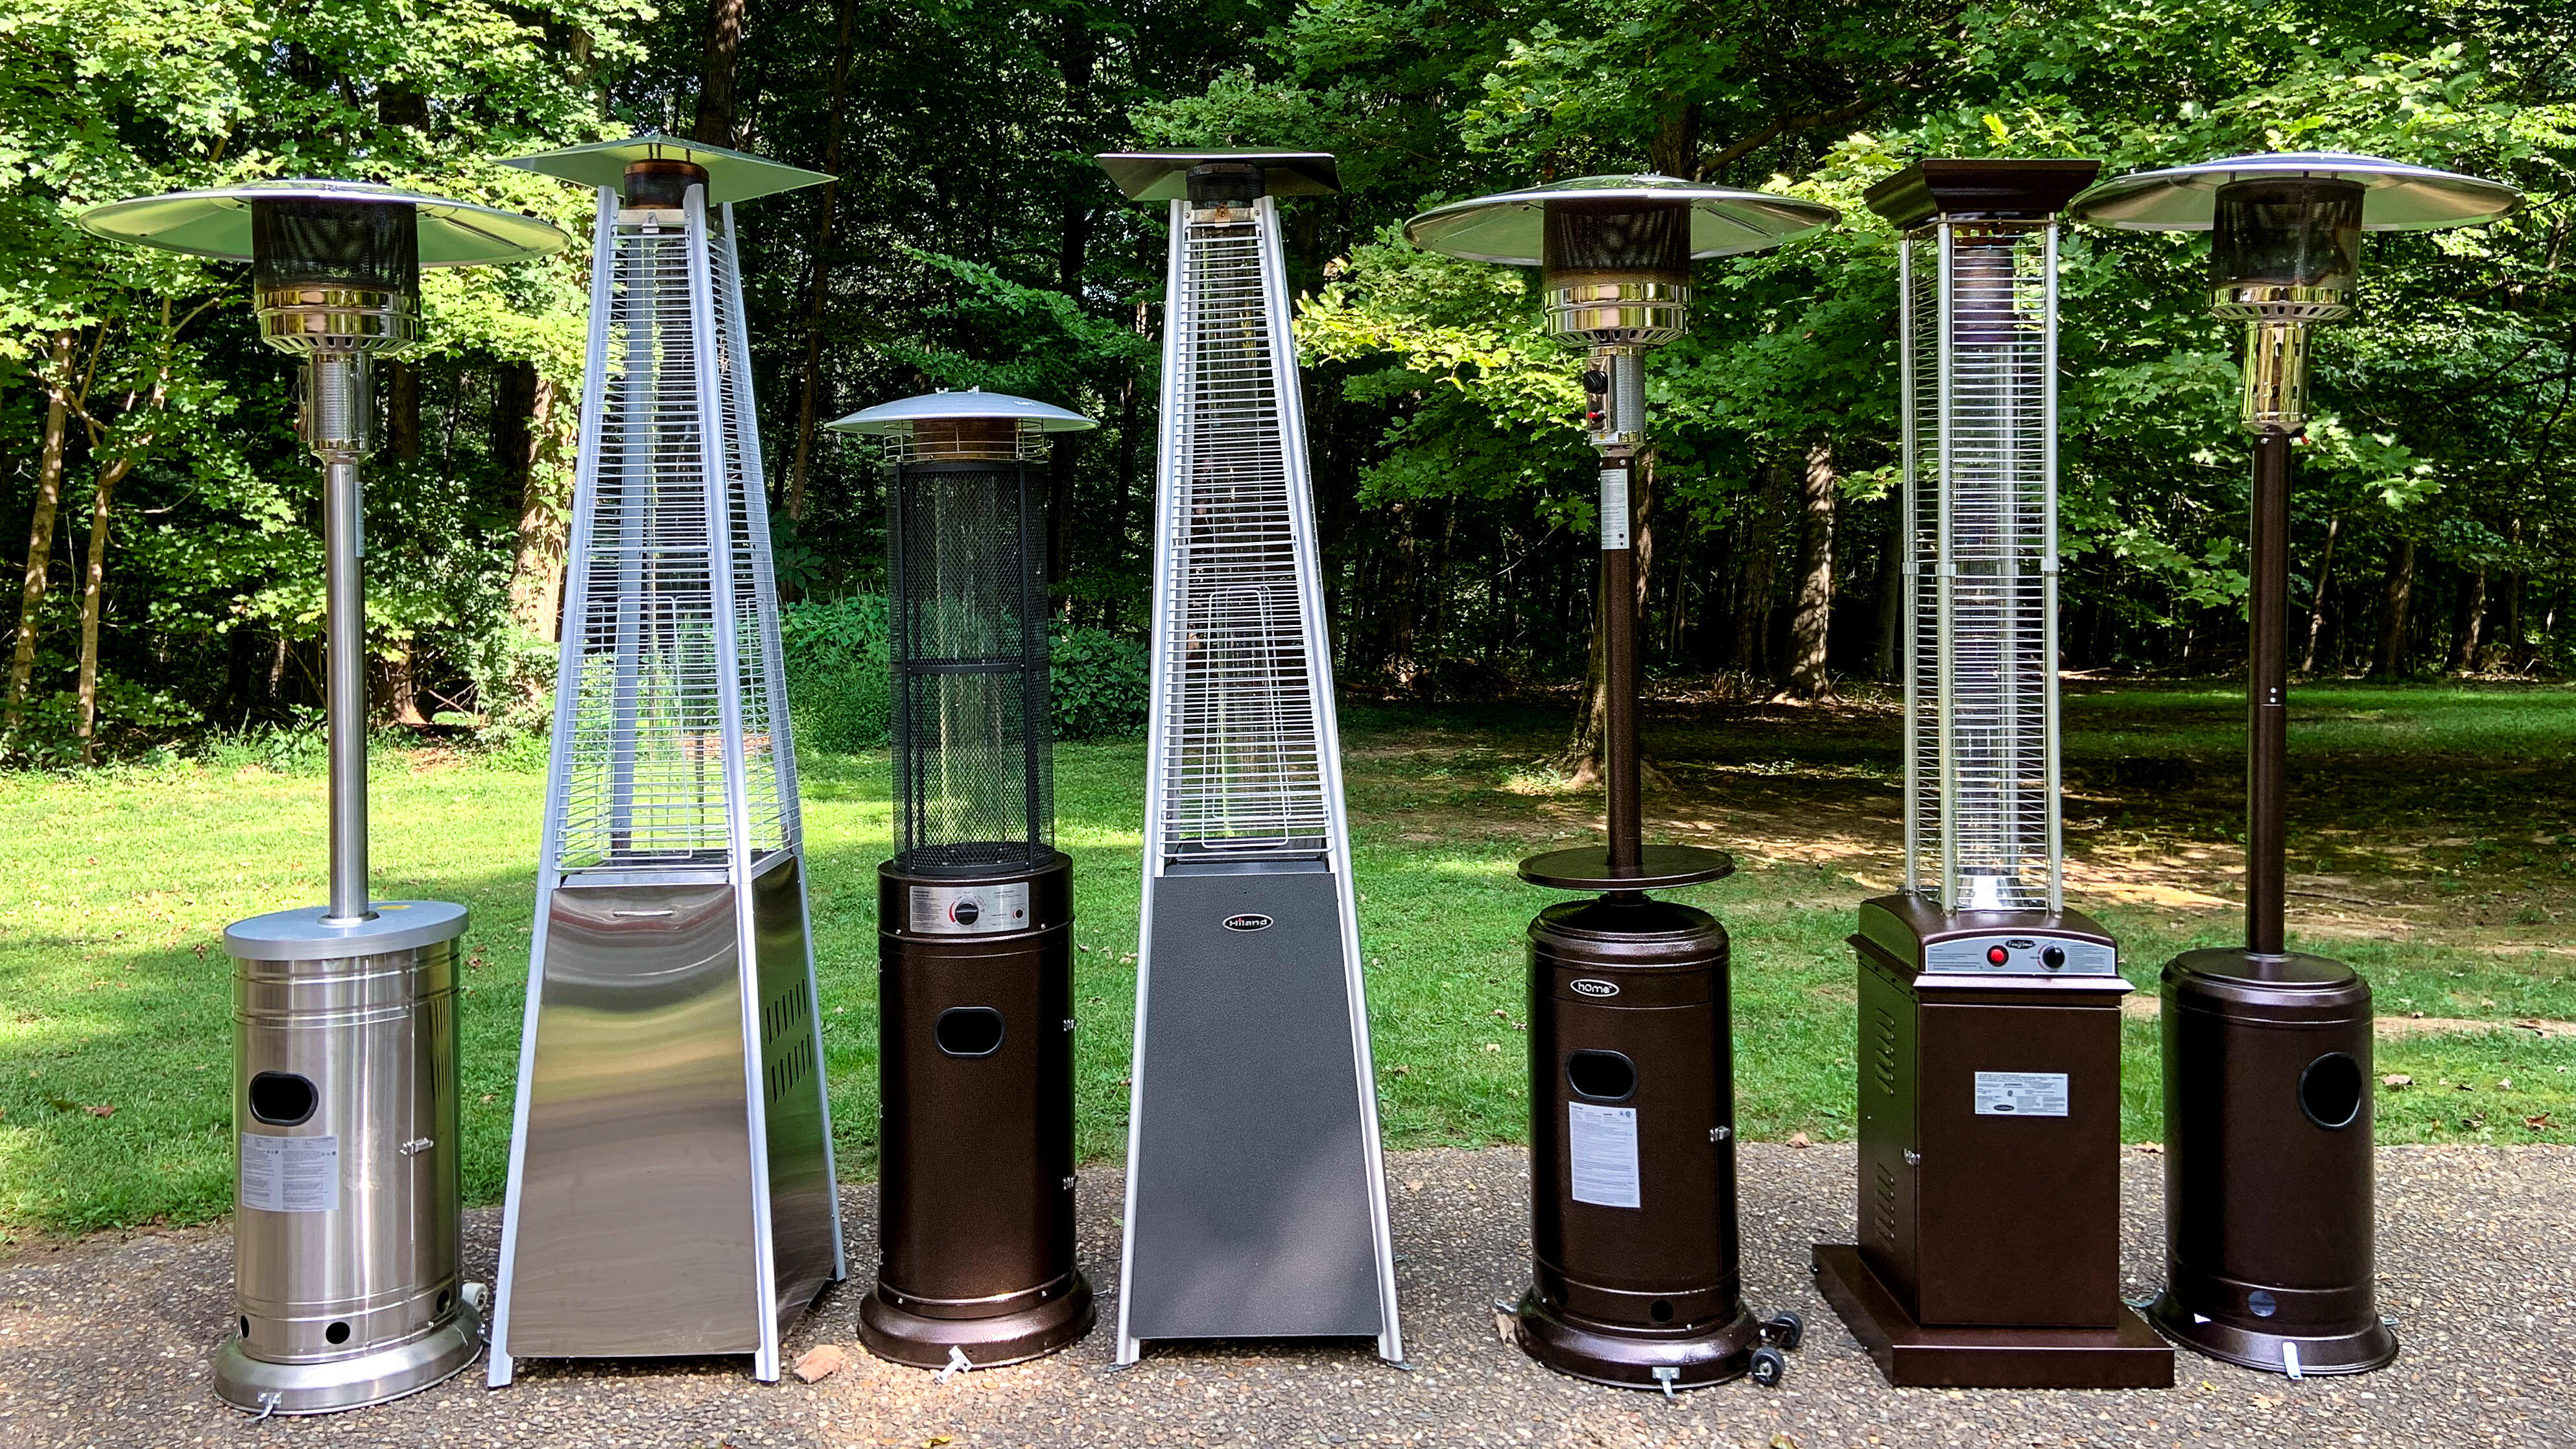 Best Patio Heaters Of 2021 Cnet, Outdoor Patio Heaters Propane Reviews